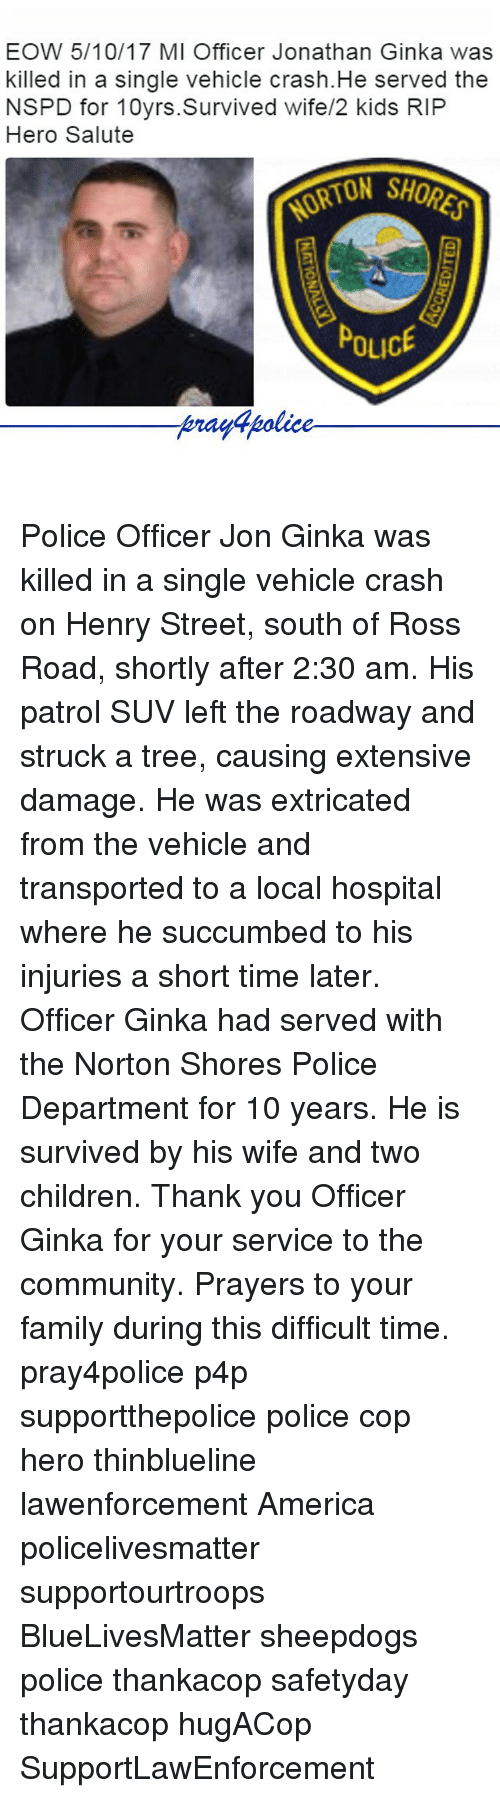 America, Children, and Community: EOW 5/10/17 MI Officer Jonathan Ginka was  killed in a single vehicle crash.He served the  NSPD for 10yrs.Survived wife/2 kids RIP  Hero Salute  ORTON SHOR  POLICE  Arayapolice Police Officer Jon Ginka was killed in a single vehicle crash on Henry Street, south of Ross Road, shortly after 2:30 am. His patrol SUV left the roadway and struck a tree, causing extensive damage. He was extricated from the vehicle and transported to a local hospital where he succumbed to his injuries a short time later. Officer Ginka had served with the Norton Shores Police Department for 10 years. He is survived by his wife and two children. Thank you Officer Ginka for your service to the community. Prayers to your family during this difficult time. pray4police p4p supportthepolice police cop hero thinblueline lawenforcement America policelivesmatter supportourtroops BlueLivesMatter sheepdogs police thankacop safetyday thankacop hugACop SupportLawEnforcement